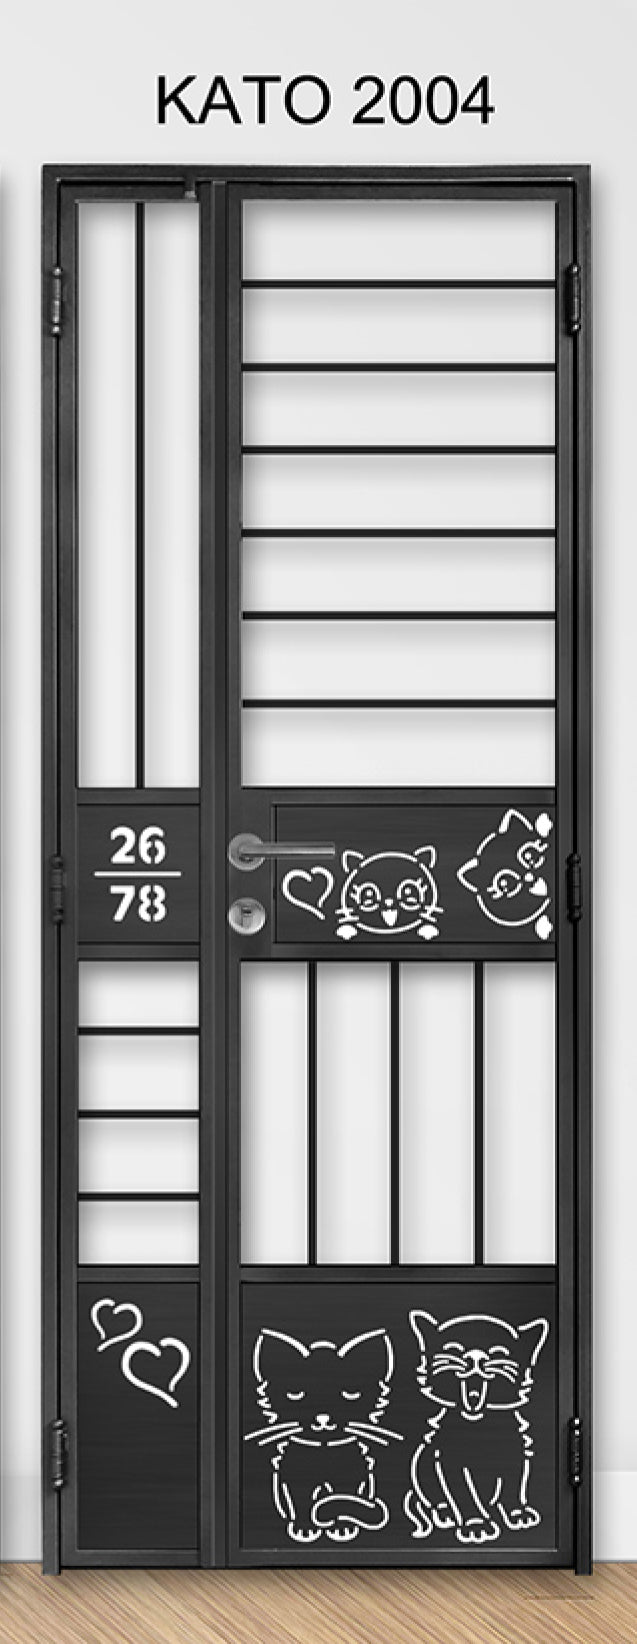 kato simplify laser cut metal gate 2004